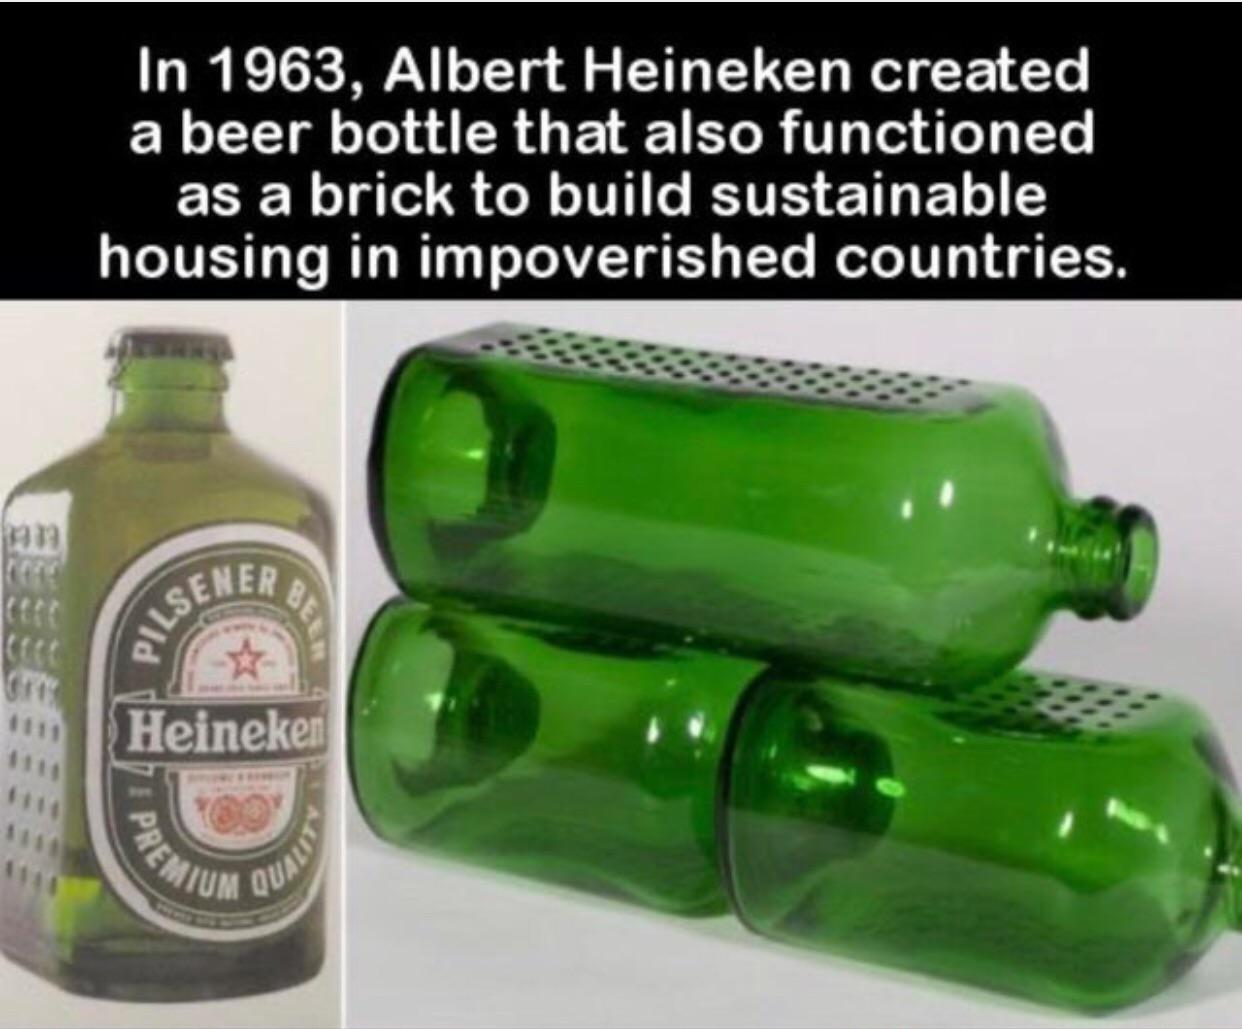 Why dont these still exist and why isnt every bottle manufacturer forced to adopt the design?